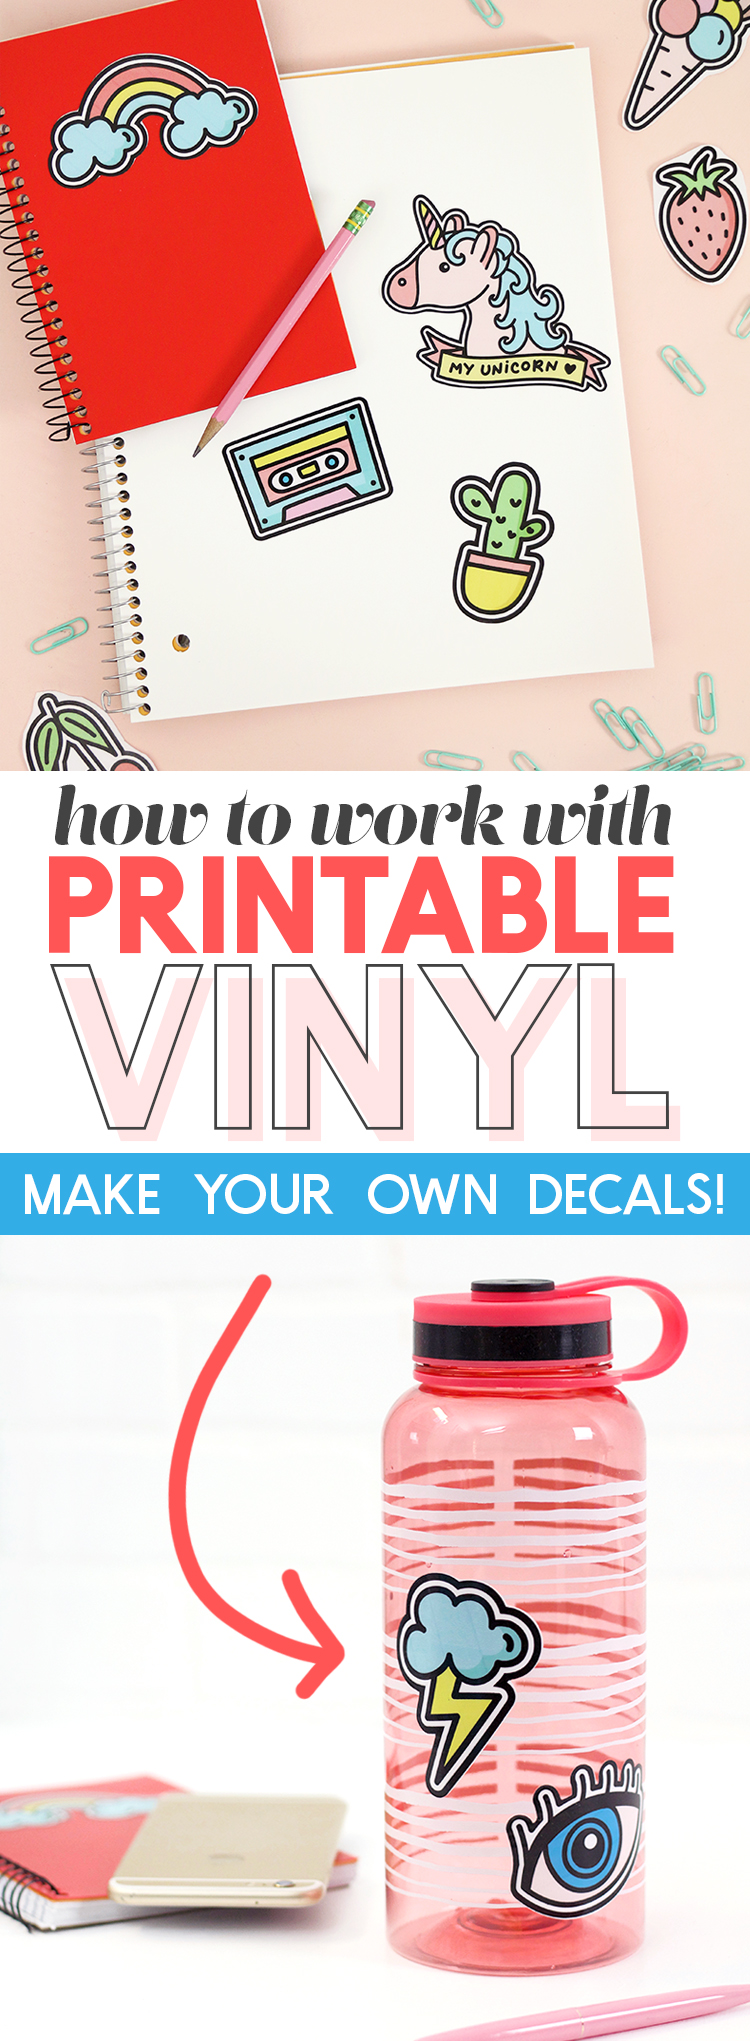 how to work with printable vinyl and make your own decals